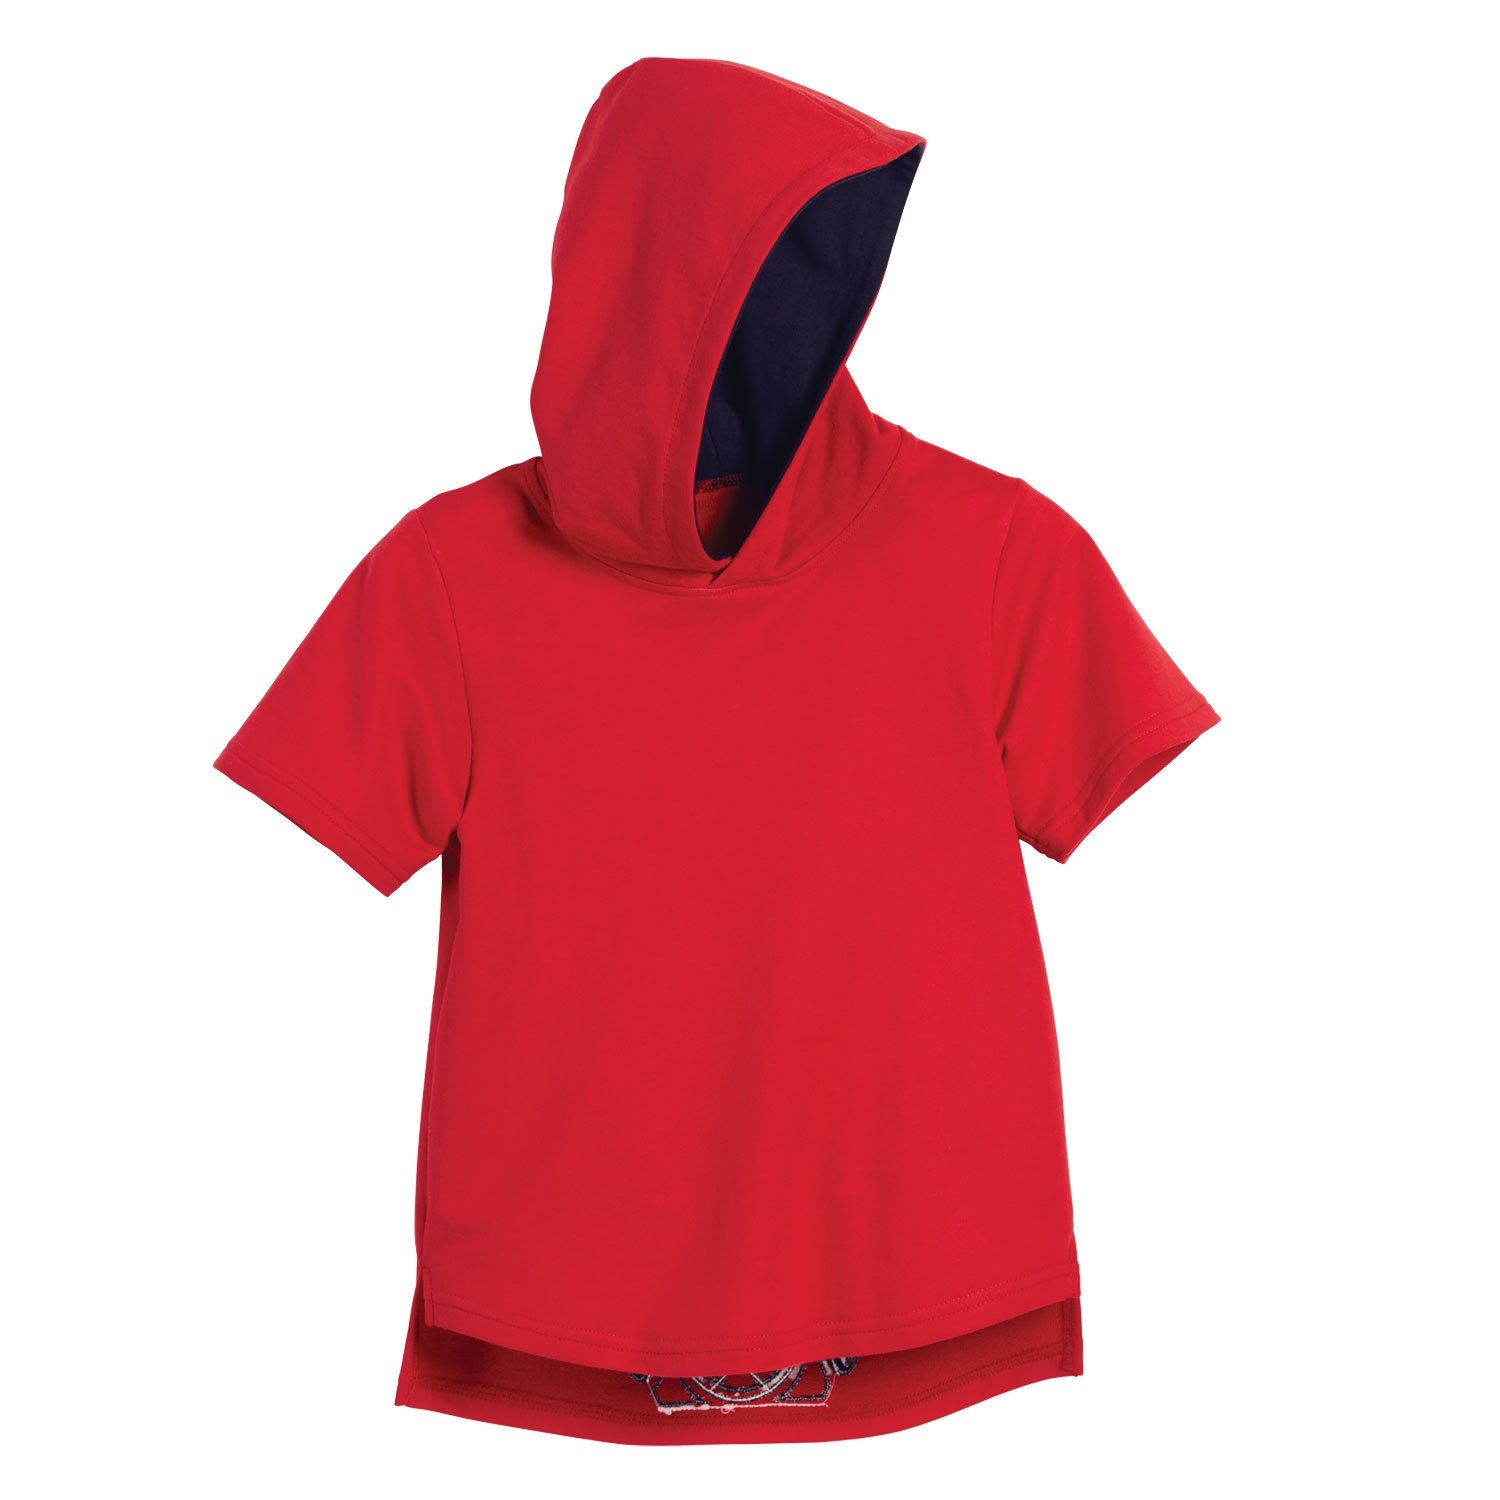 Beachcombers Boy's Tops Cotton Polyester Scuba Contrast Hoody Red